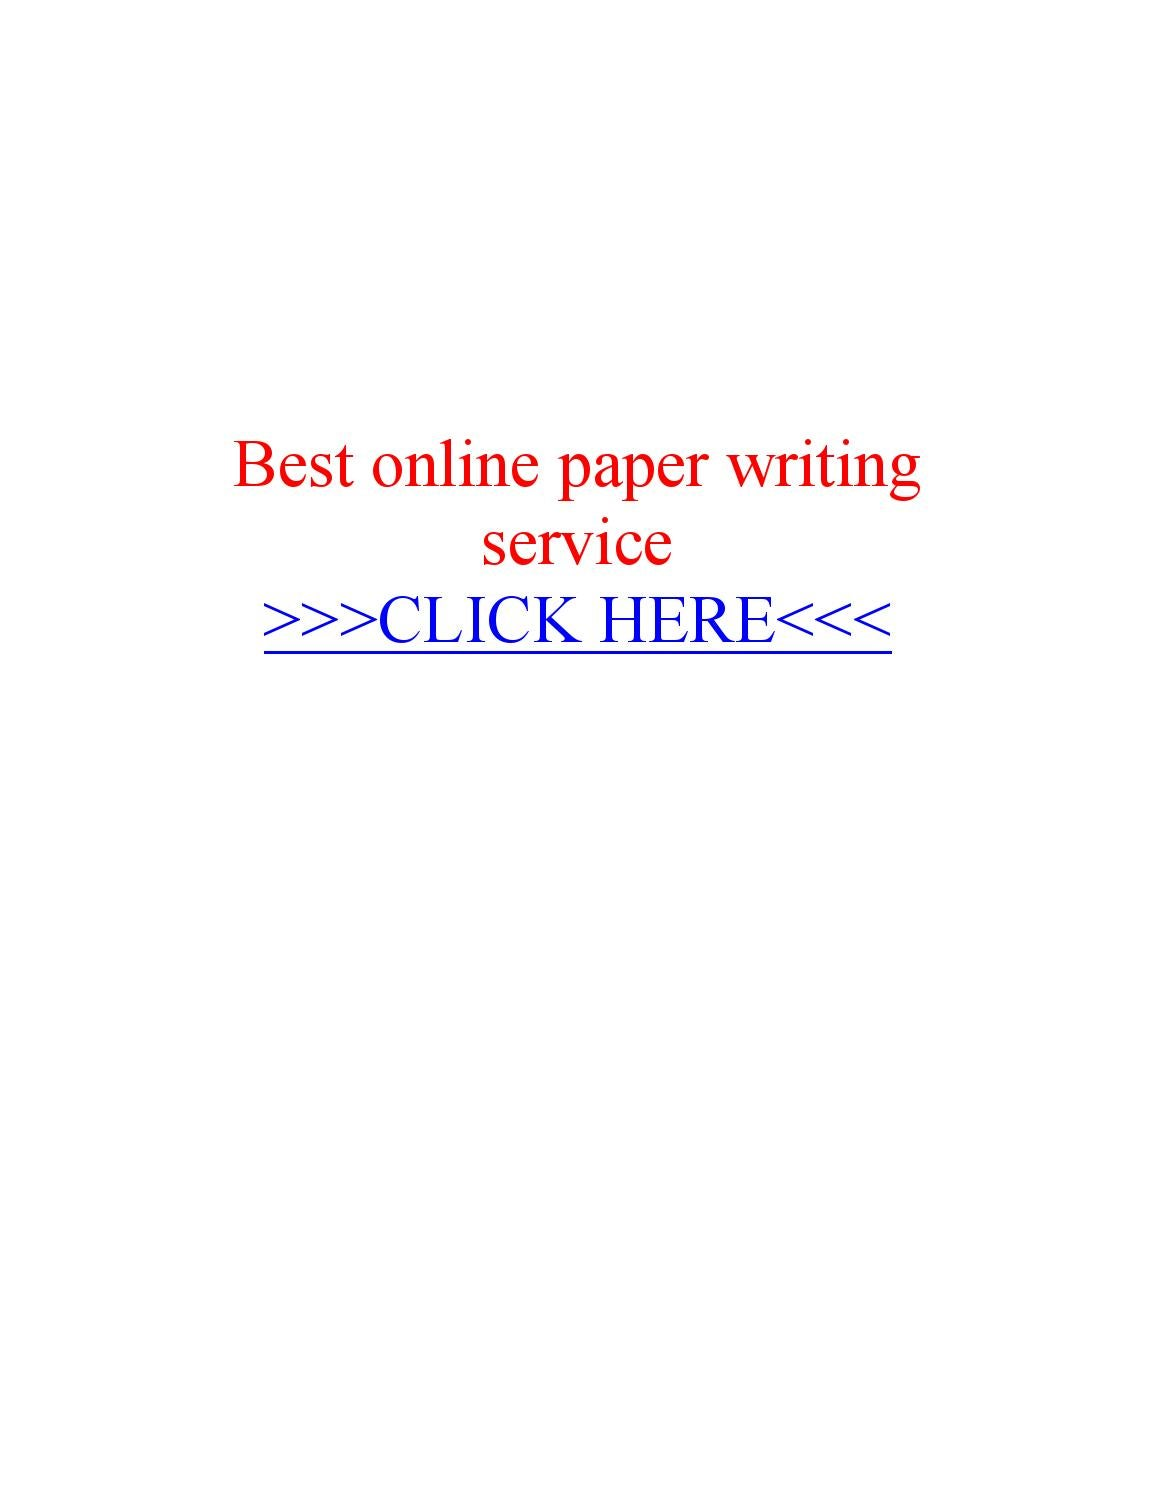 Compare online will writing services